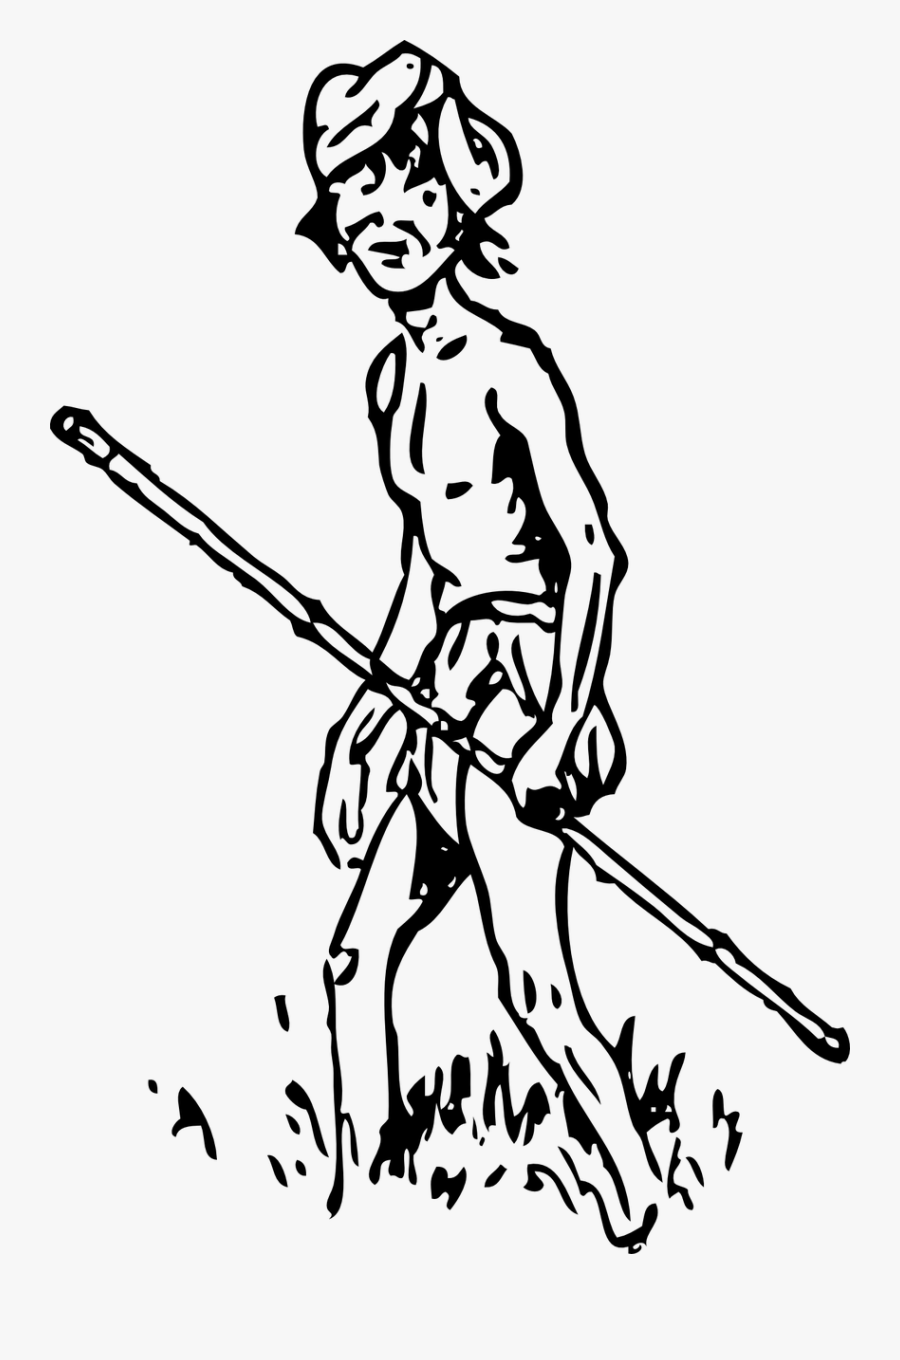 Man Stick Native Free Picture - Aboriginal People Clipart Black And White, Transparent Clipart